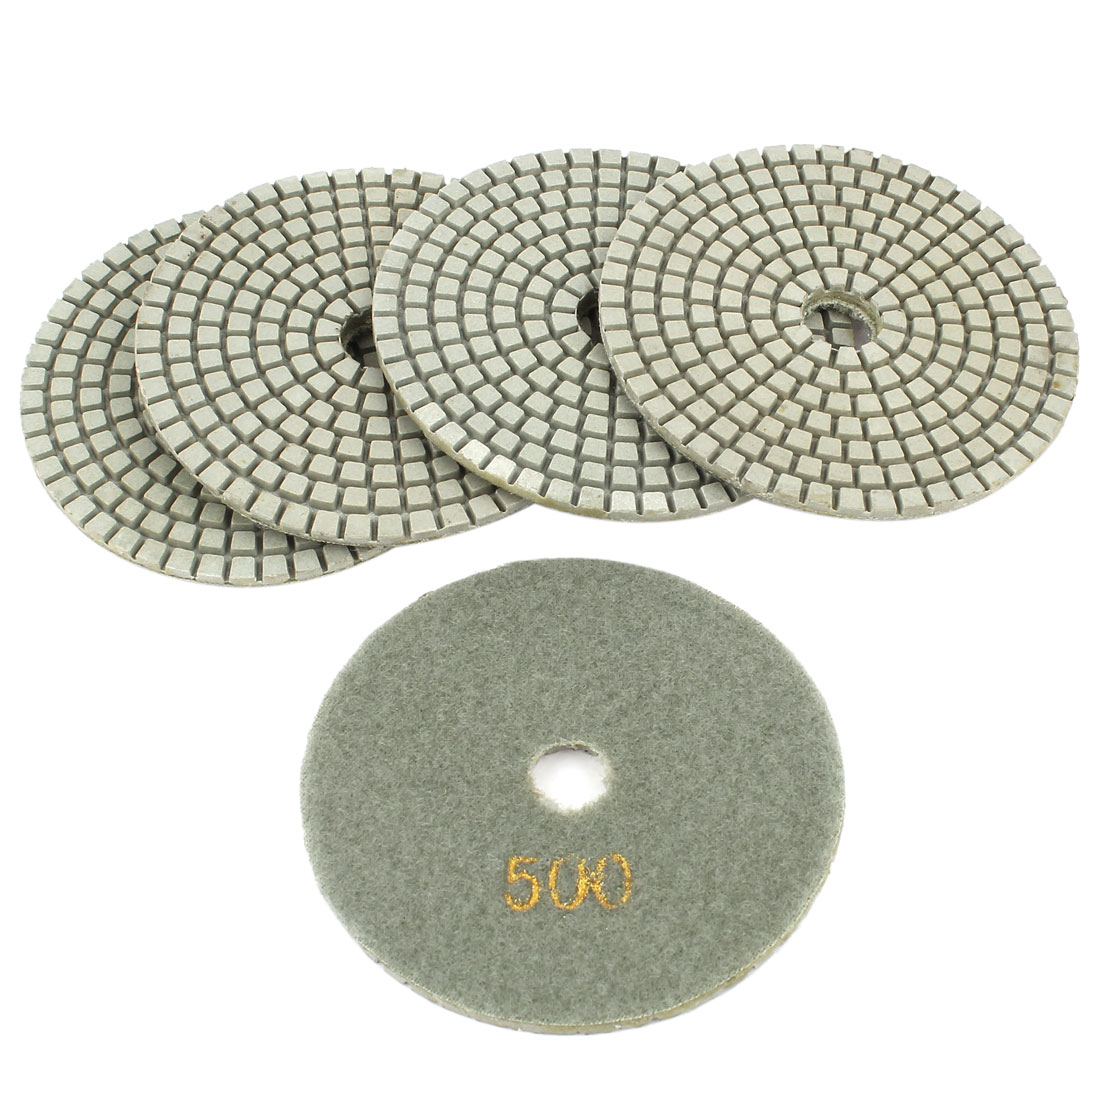 "5 Pcs 4"" Diamond Polishing Wet Pads Grit 500 for Granite Concrete Stone"